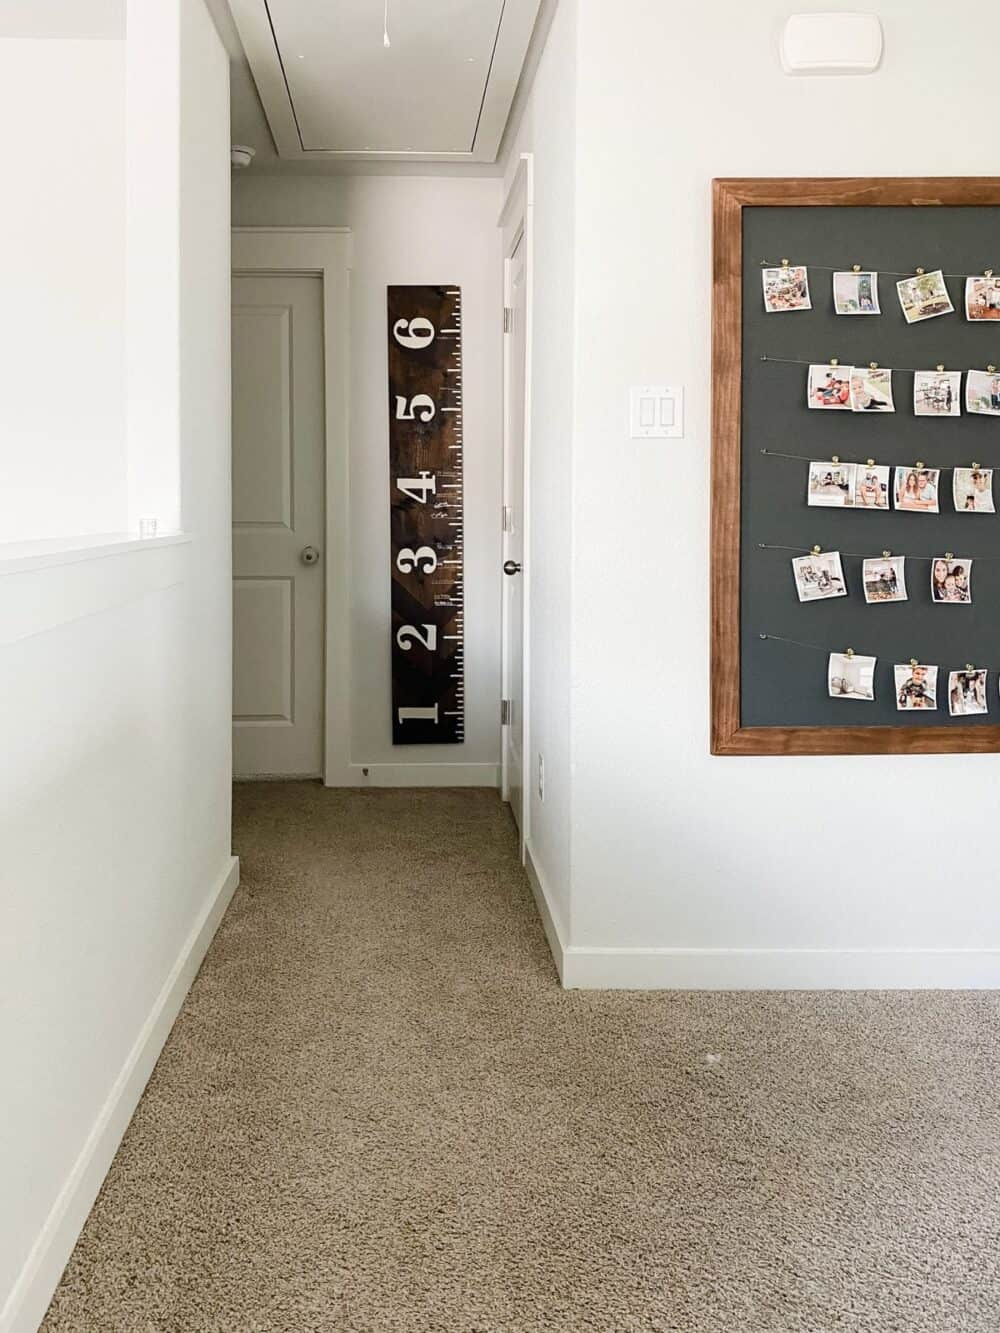 A small hallway with a wooden growth chart ruler hanging on the wall.